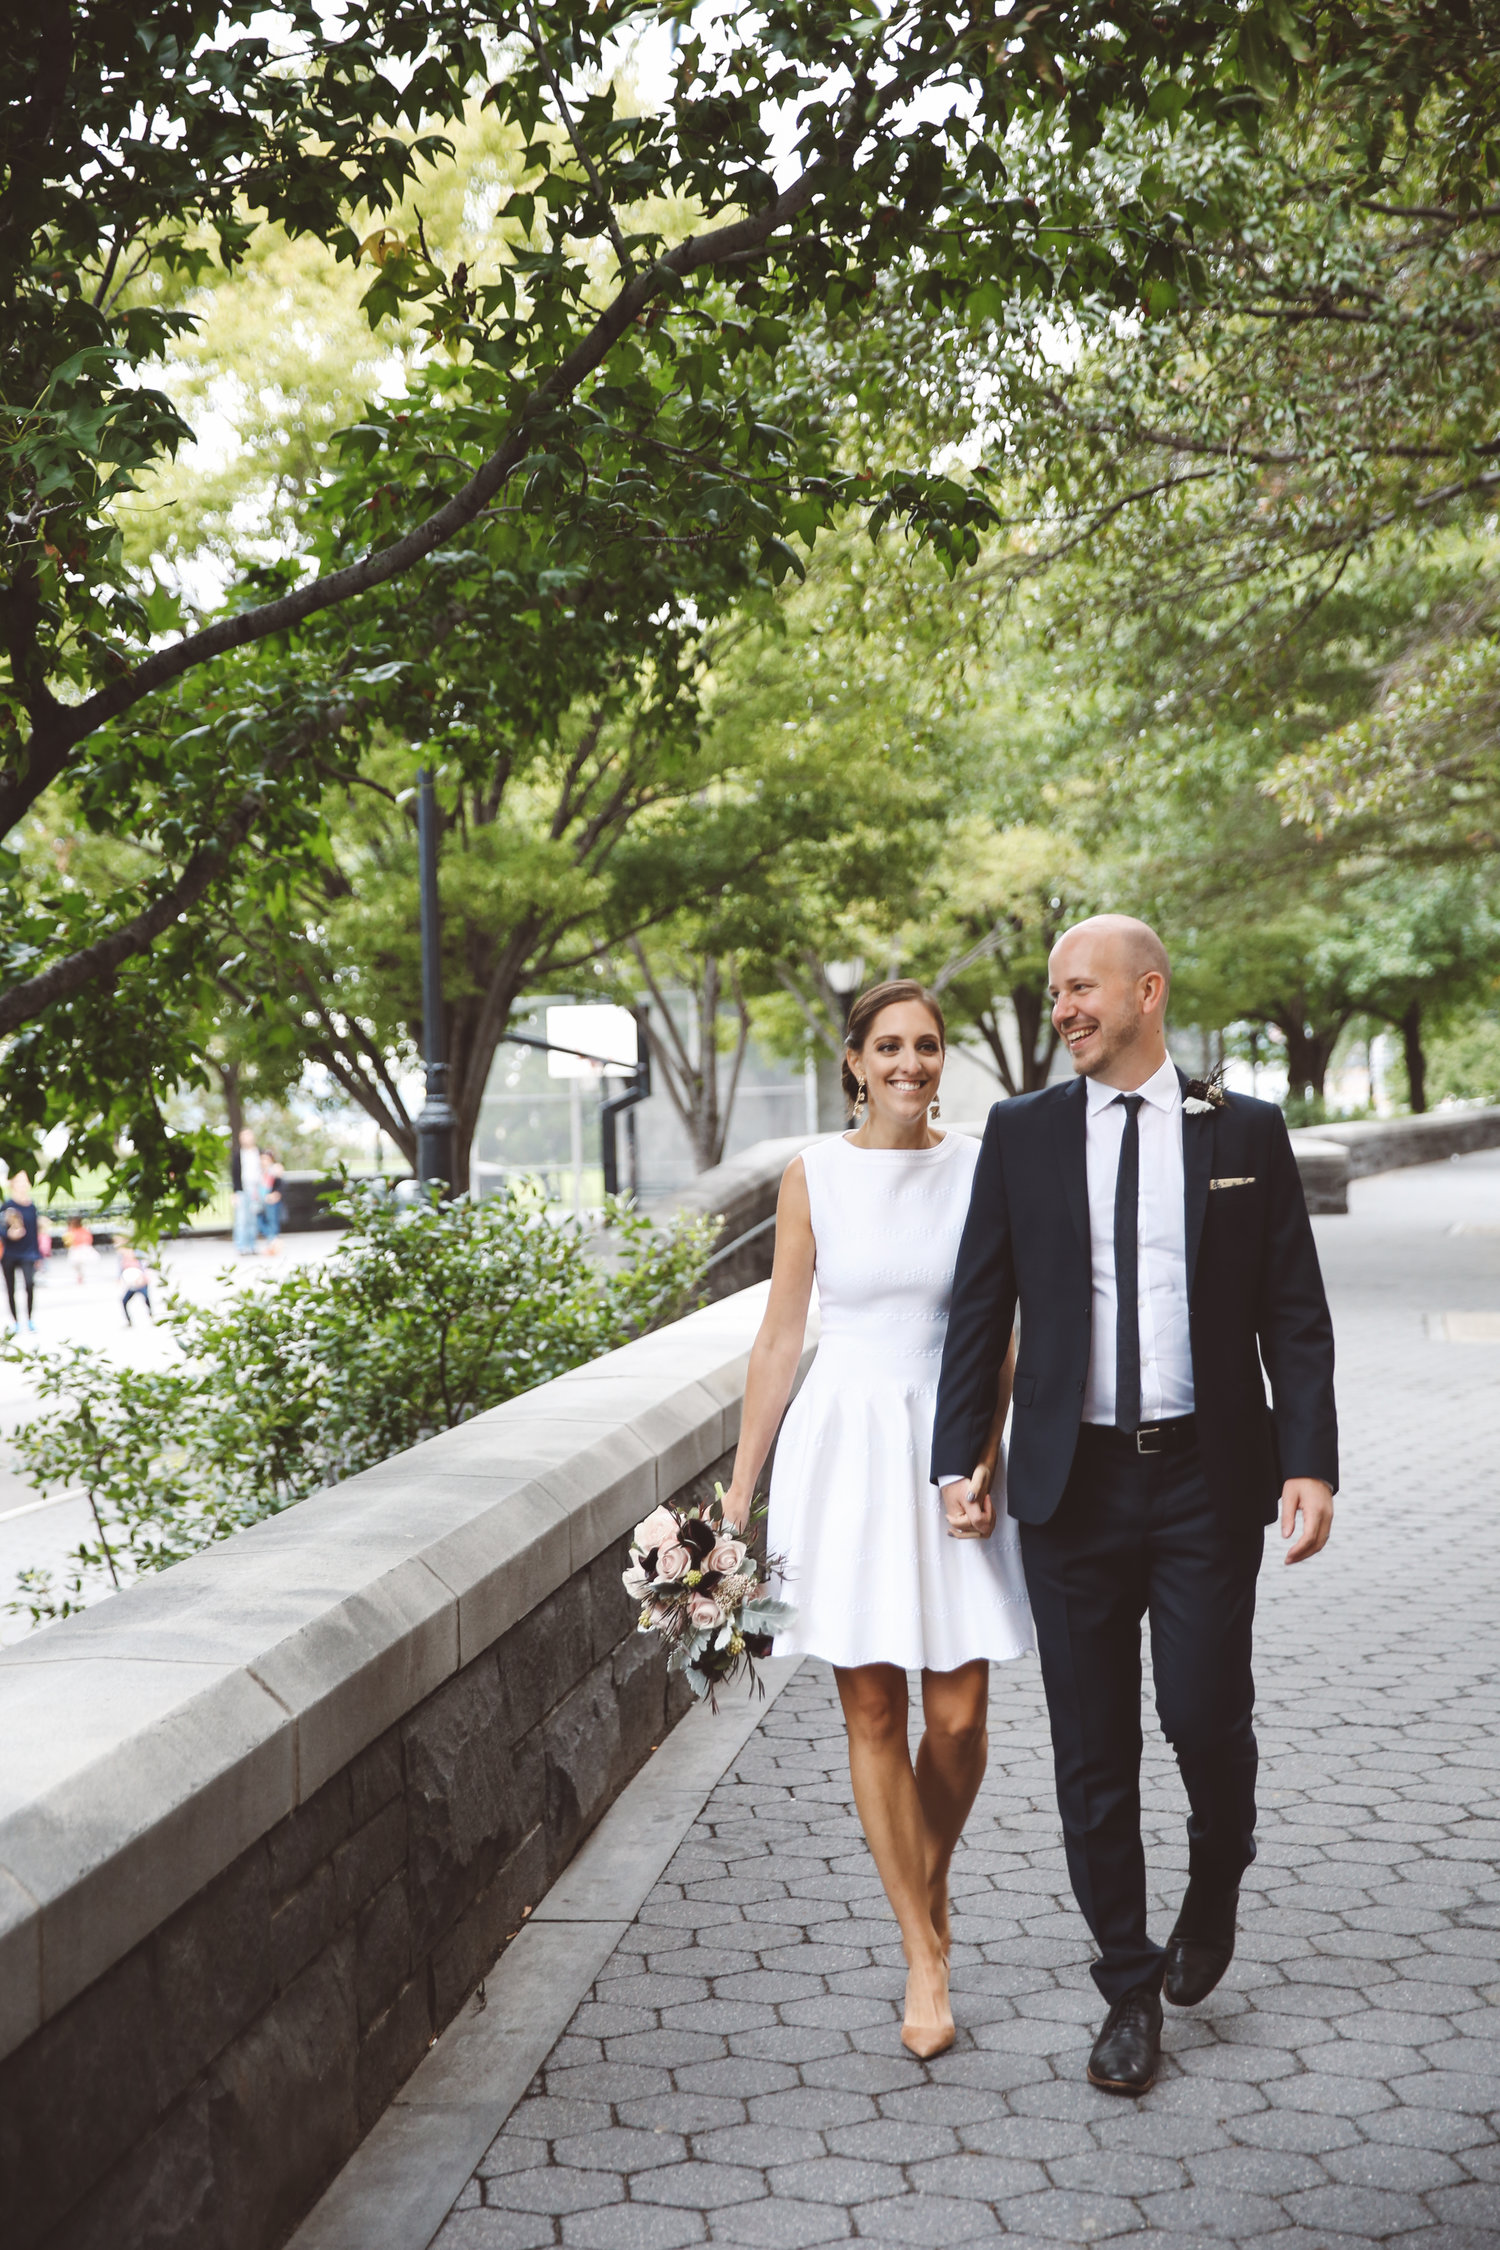 How To Elope In New York City Planning A Small Wedding In The Big